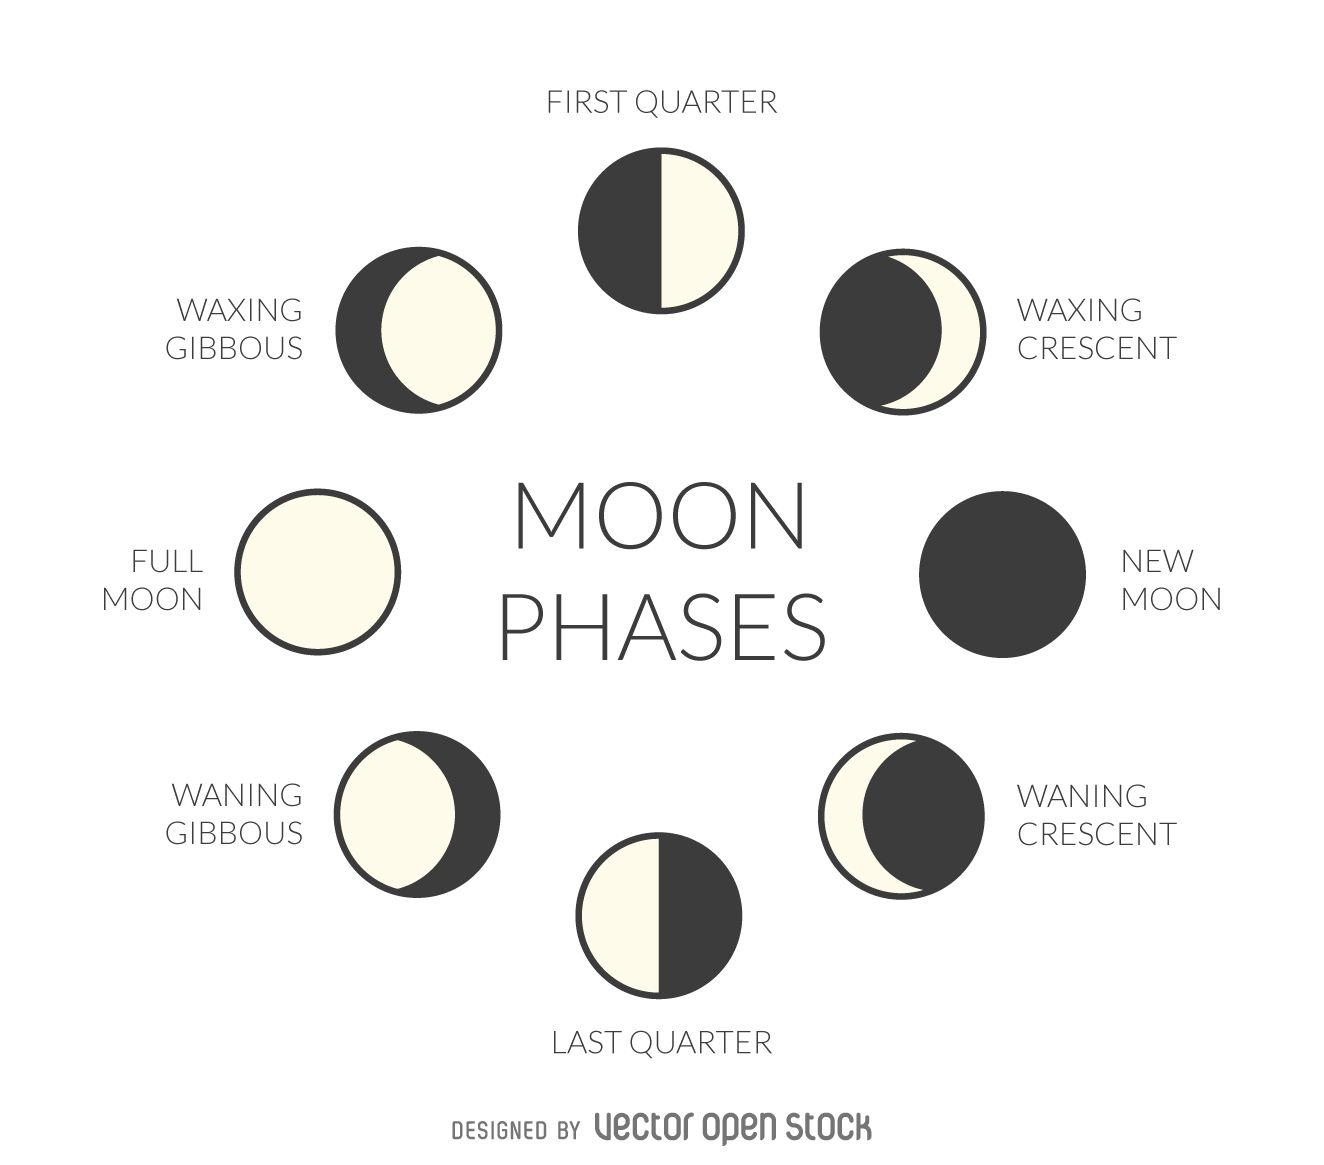 Illustration Featuring The Phases Of The Moon Design Includes Simple Moon Drawings Of Every